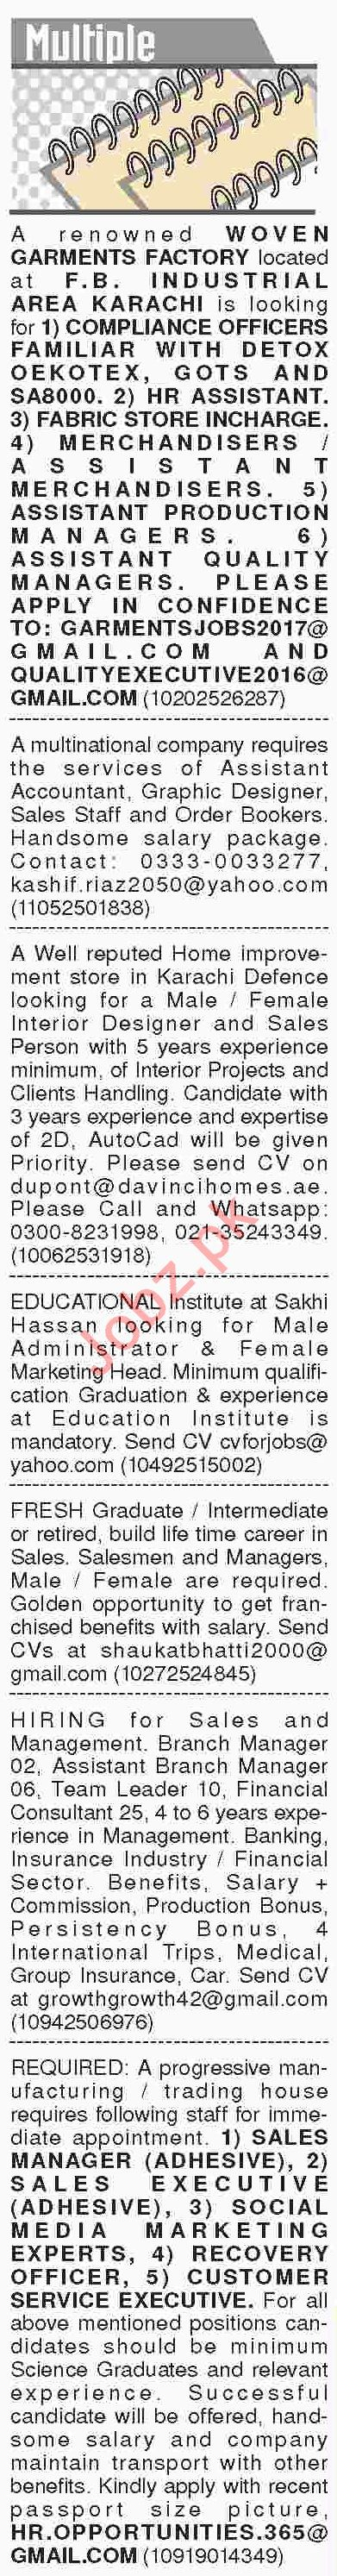 Dawn Sunday Classified Ads 10th March 2019 Multiple Staff